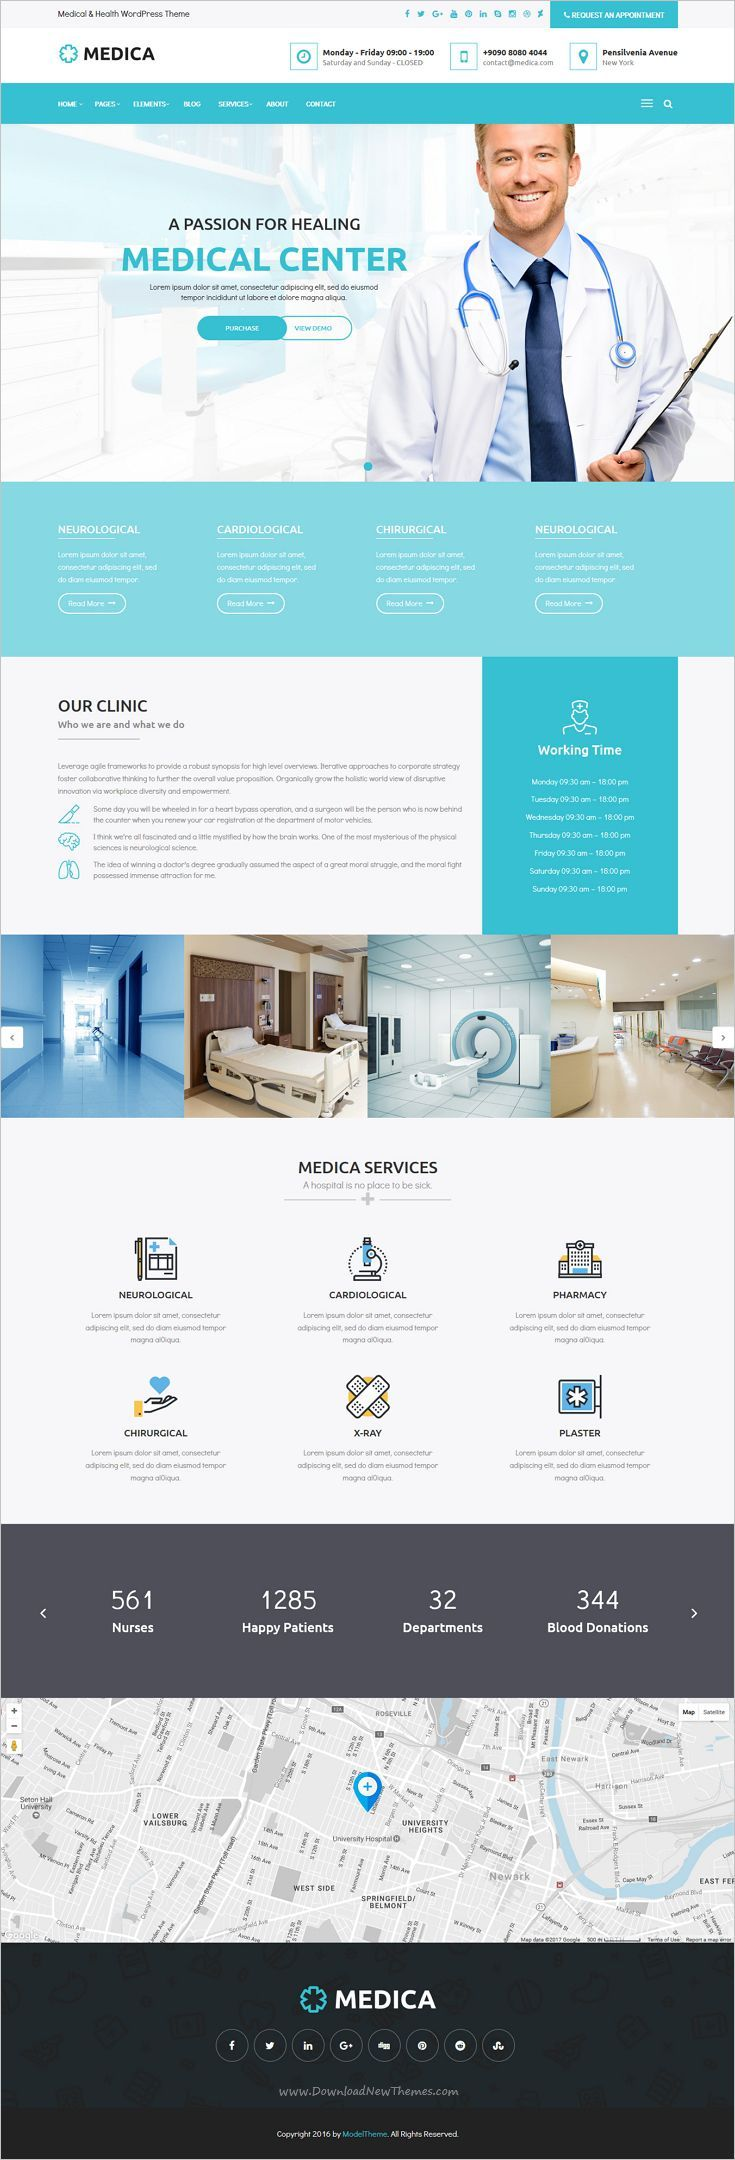 MedicaWP is a stilish and modern design responsive #WordPress theme for medical, #hospital and healthcare #websites with 11+ unique homepage layouts download now➩ https://themeforest.net/item/medicawp-a-stilish-medical-hospital-health-wordpress-theme/18977250?ref=Datasata